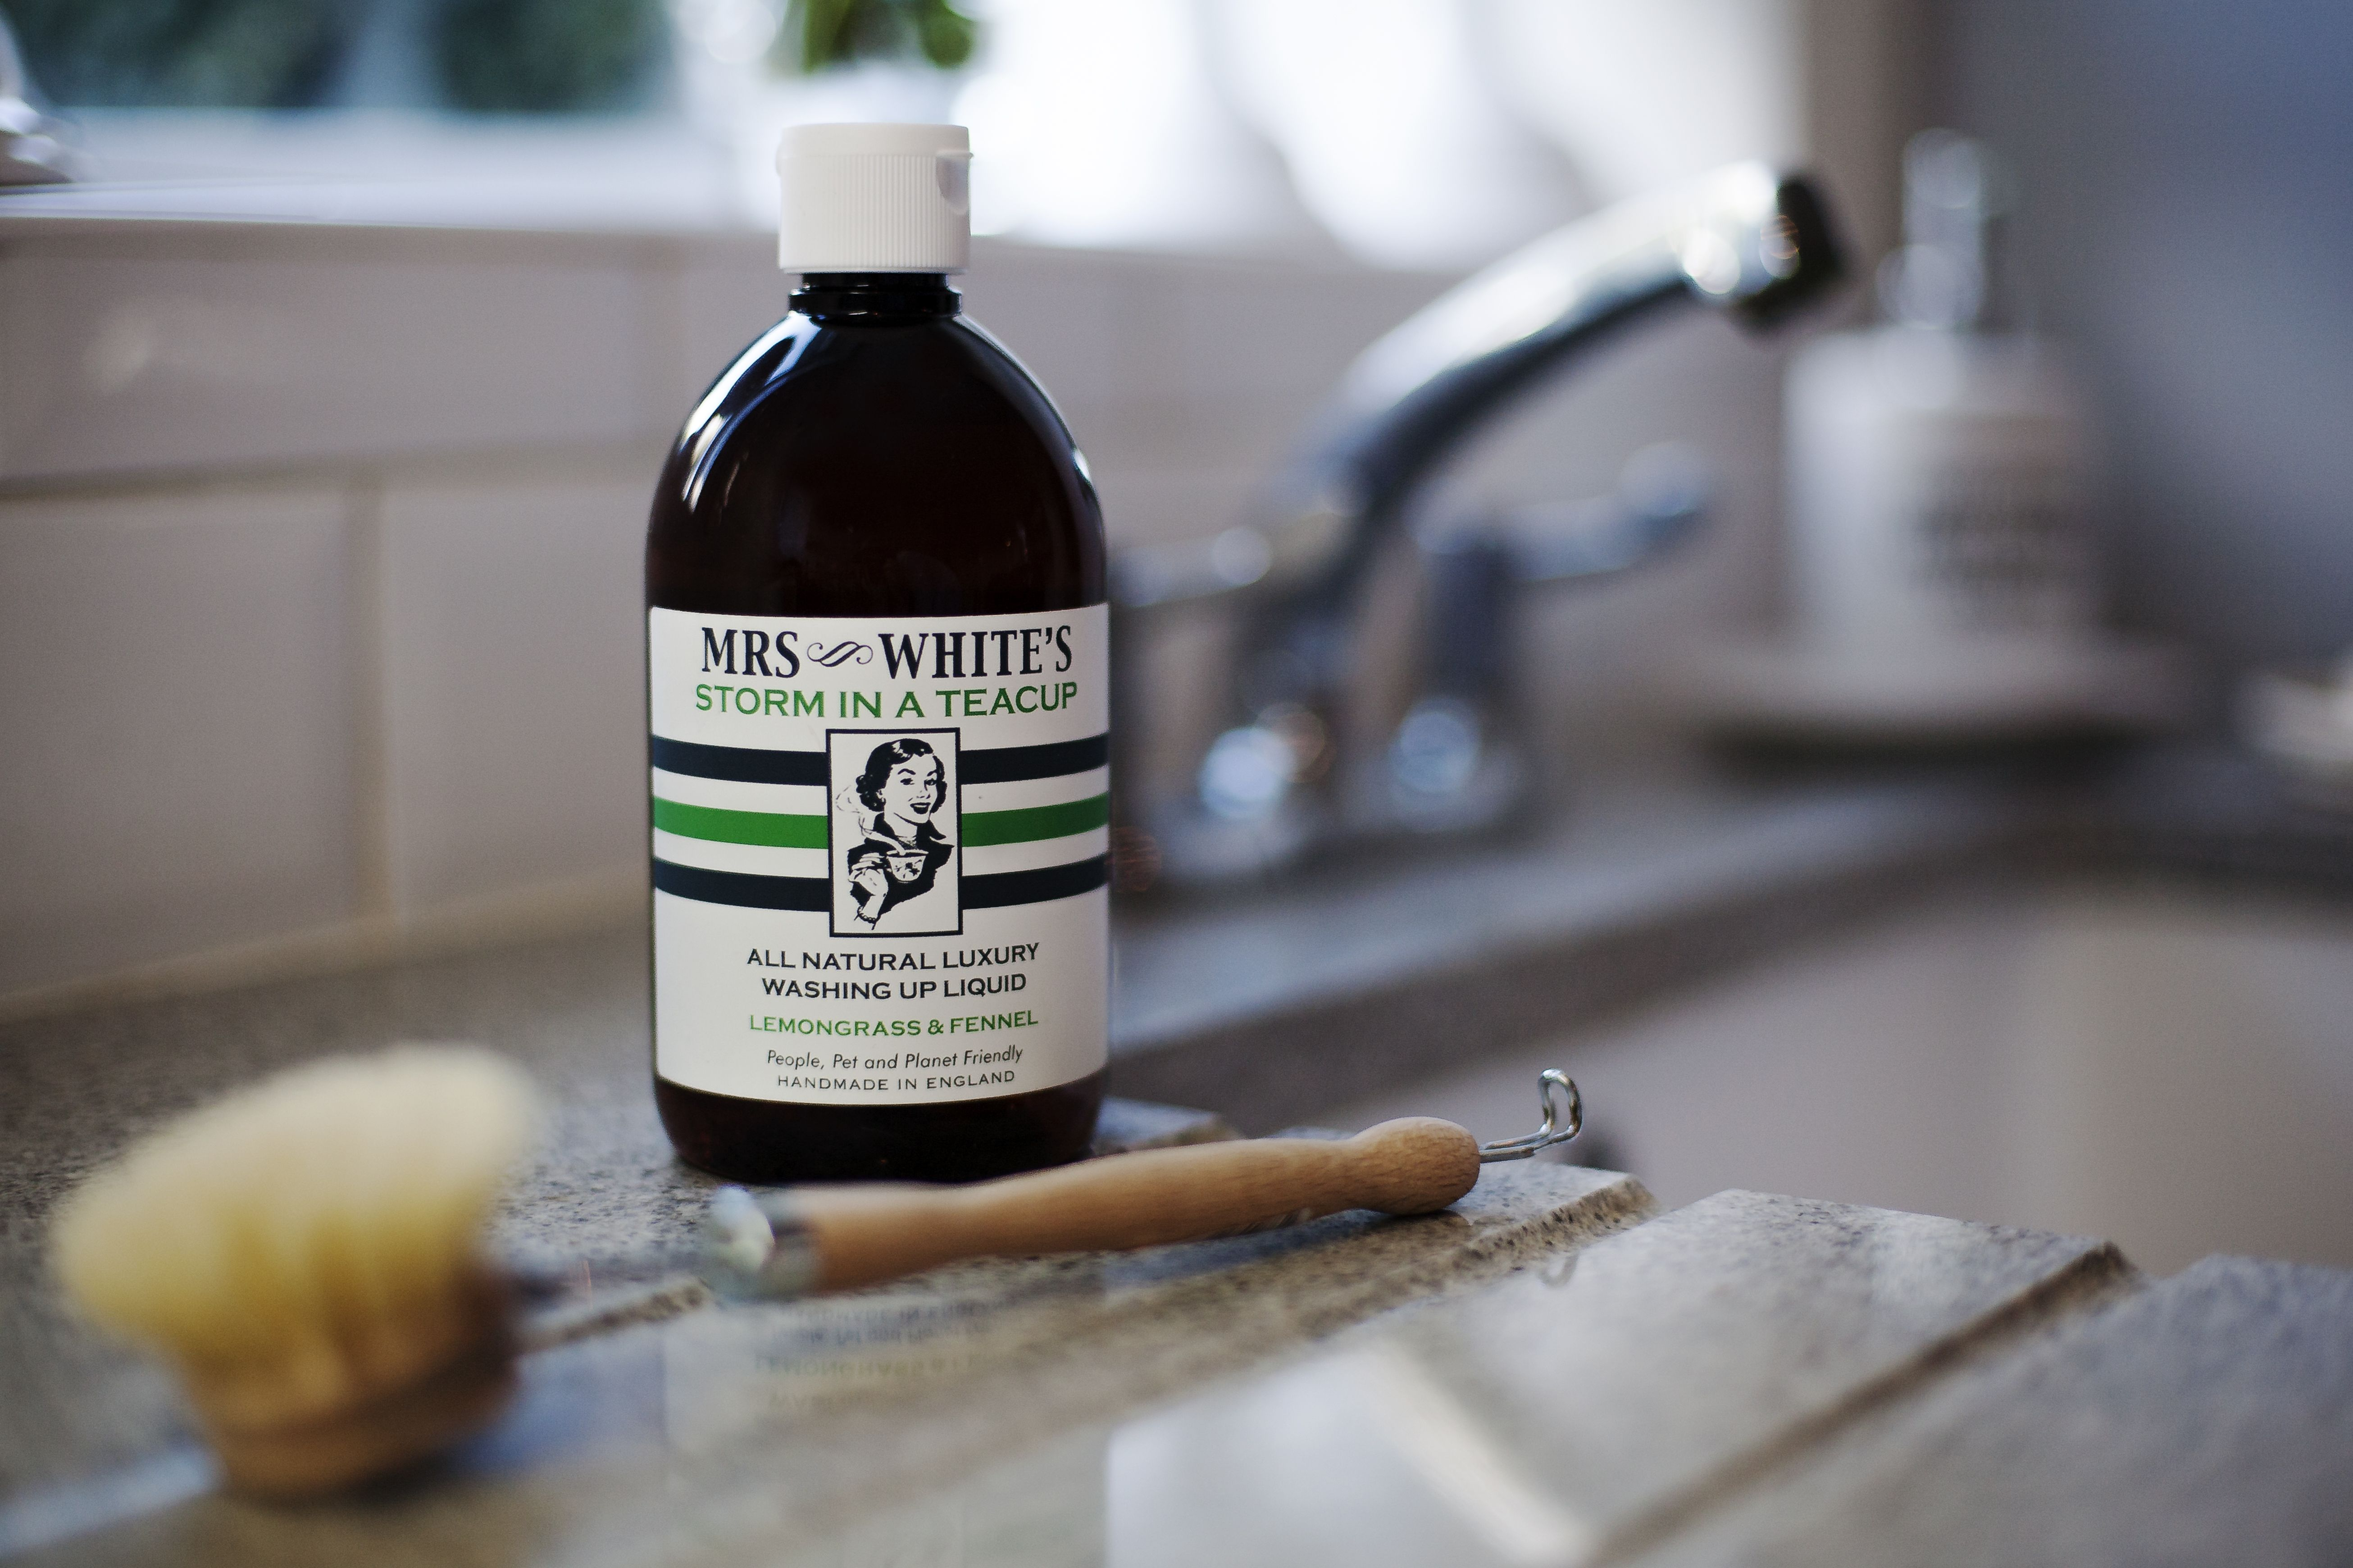 """Mrs White's """"Storm in a Teacup"""" all natural washing up liquid uses traditional recipes handed down through our family to ensure an all natural clean that will leave your dishes as spotless as your conscience. Our products are chemical free."""